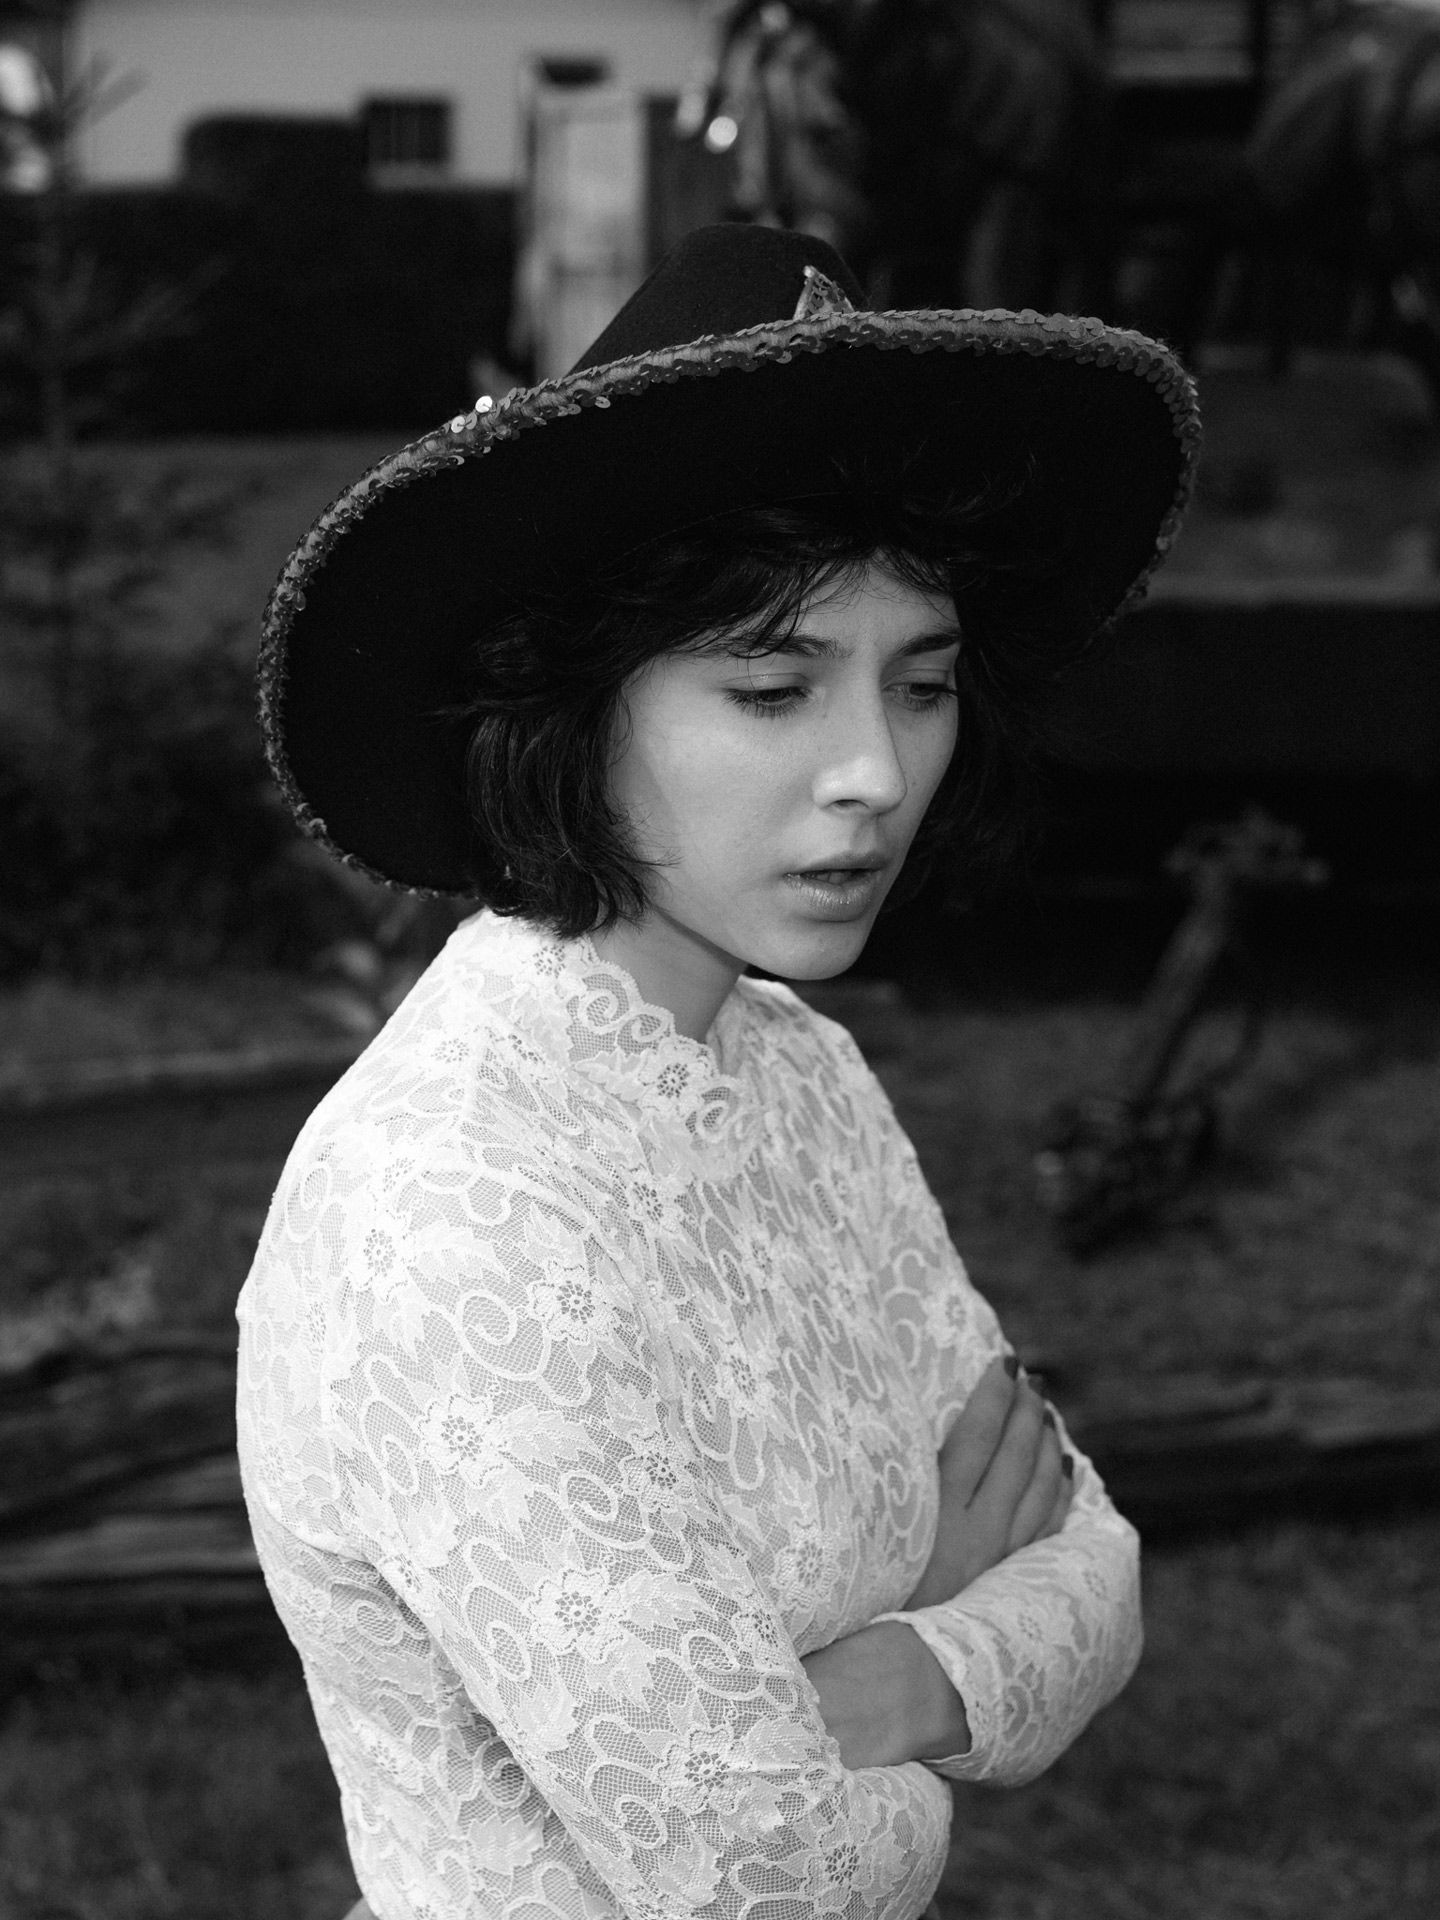 black haired girl wearing cowboy hat in black and white by Alexi Hobbs for Larose Paris in St-Tite